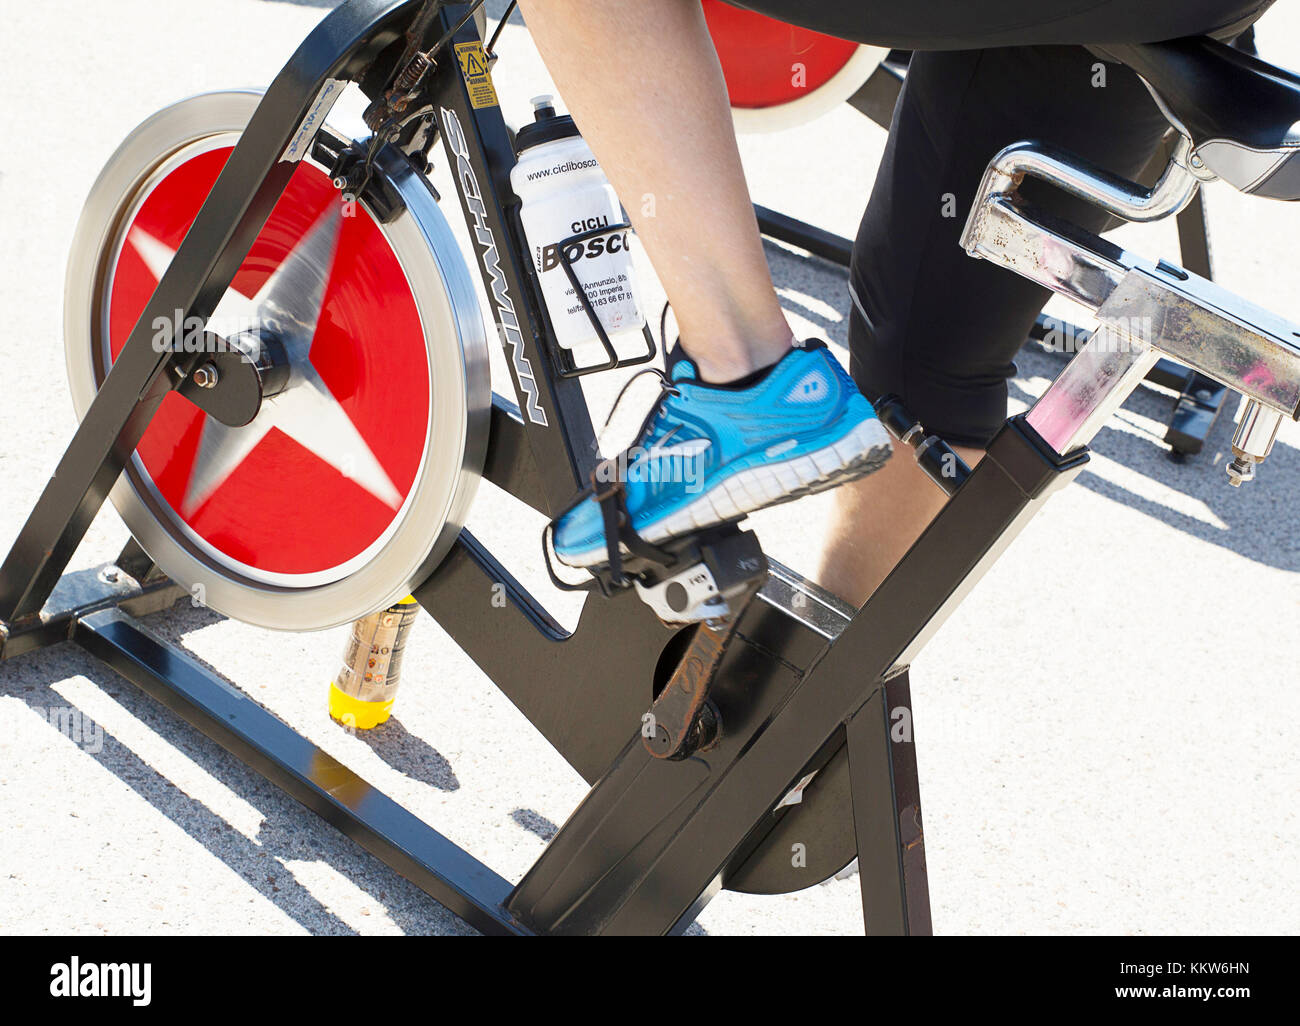 Legs moving during a workout of spinning -----Imperia, IM, Italy - May 18, 2014: People perform a spinning session - Stock Image